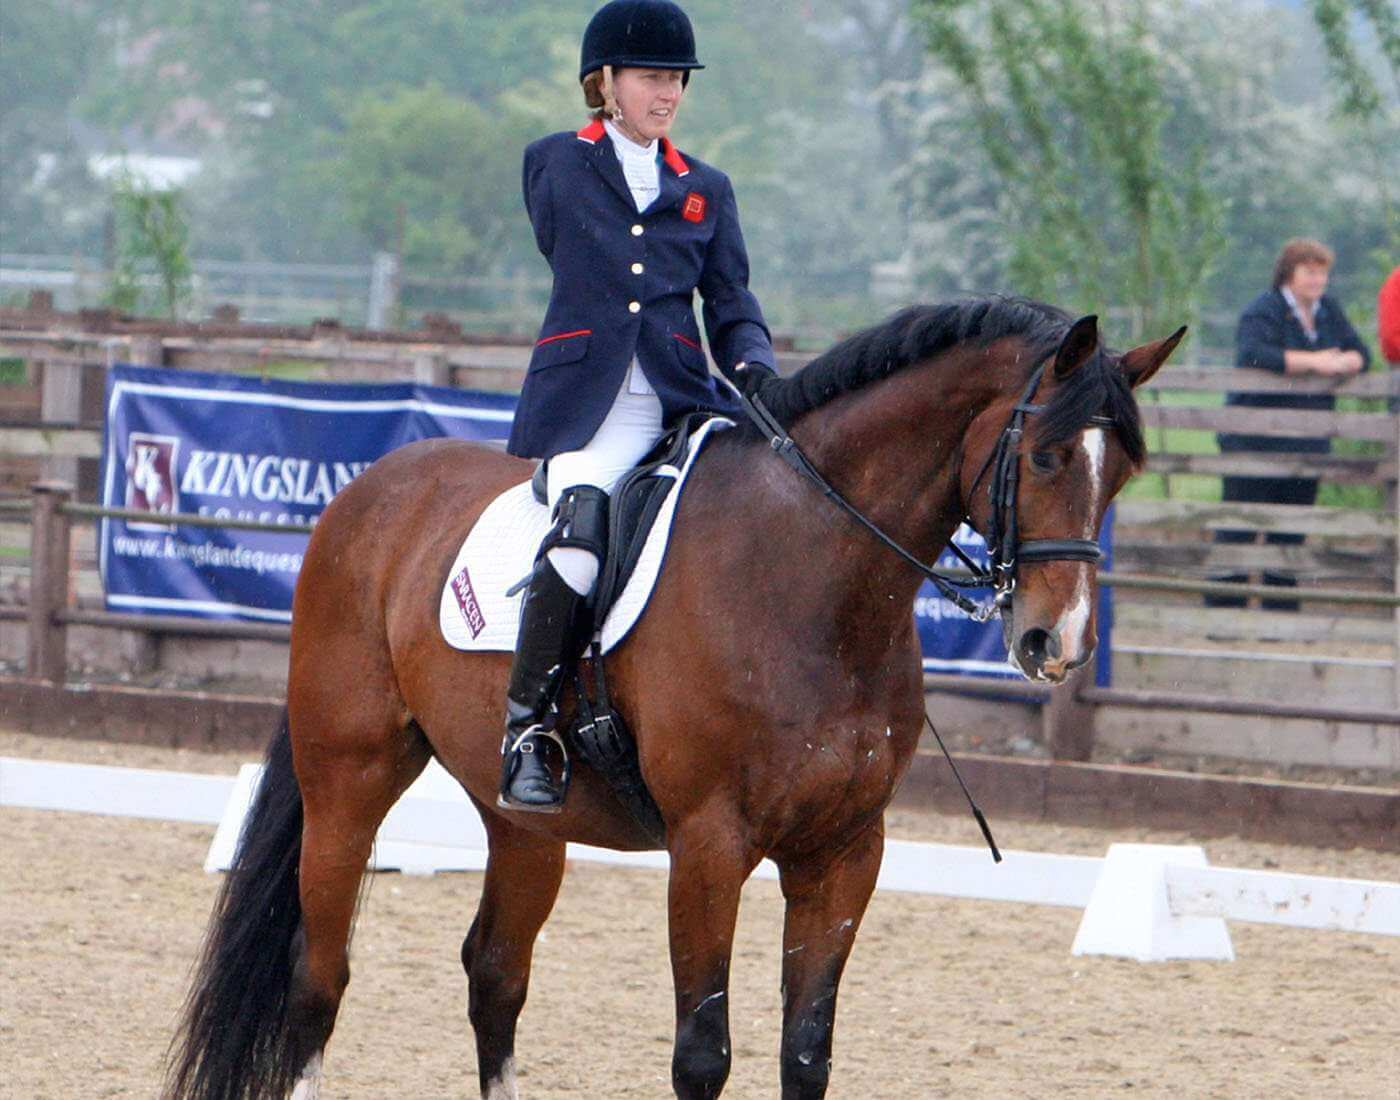 https://sportsmatik.com/uploads/matik-sports-corner/matik-know-how/para-dressage_1493816460_66205.jpg